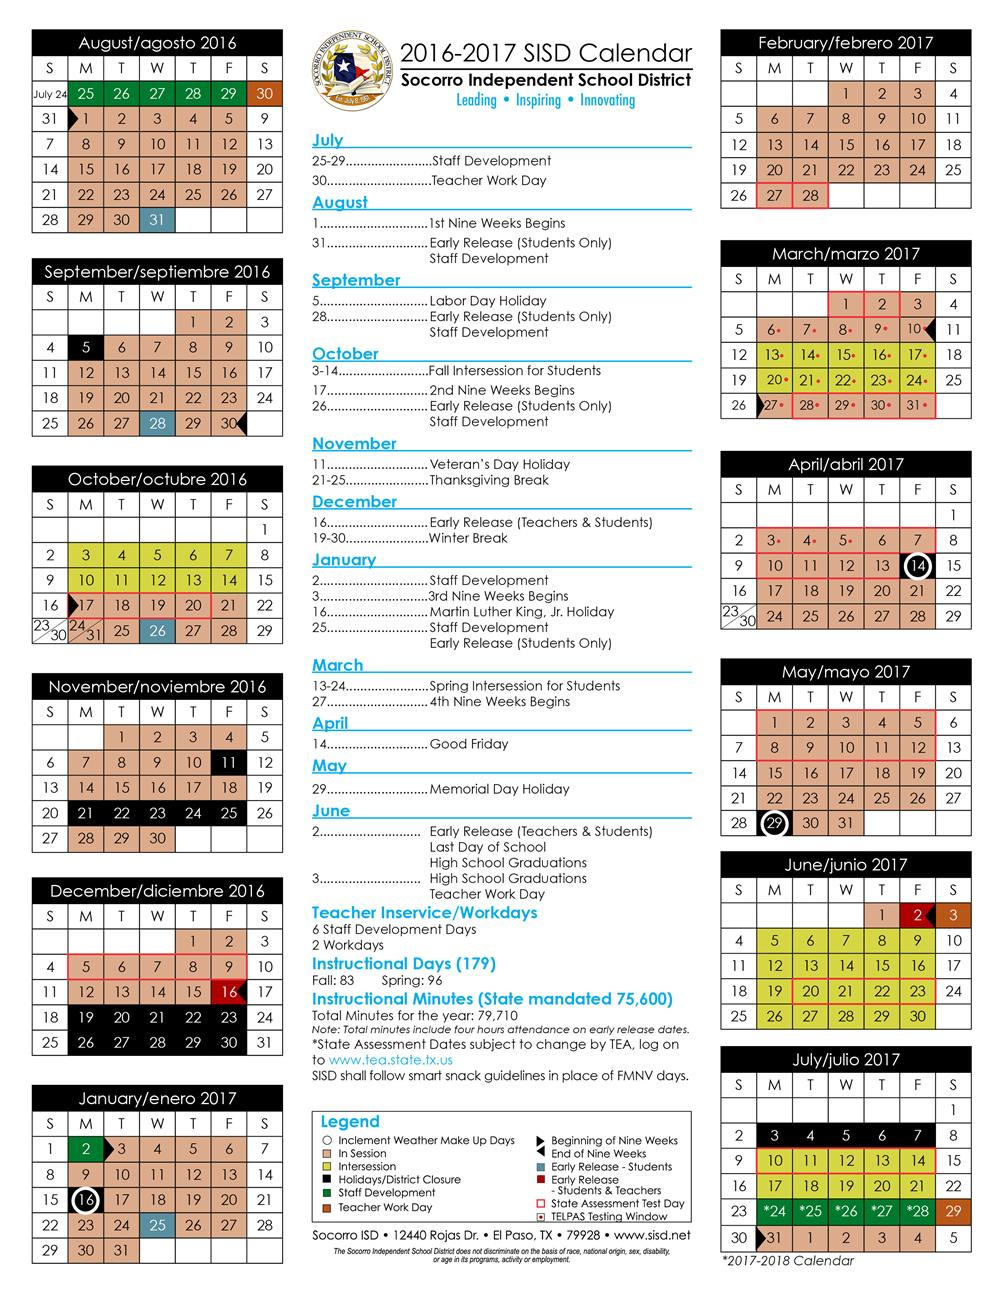 2016-17 And 2017-18 Sisd Student Calendar Approved